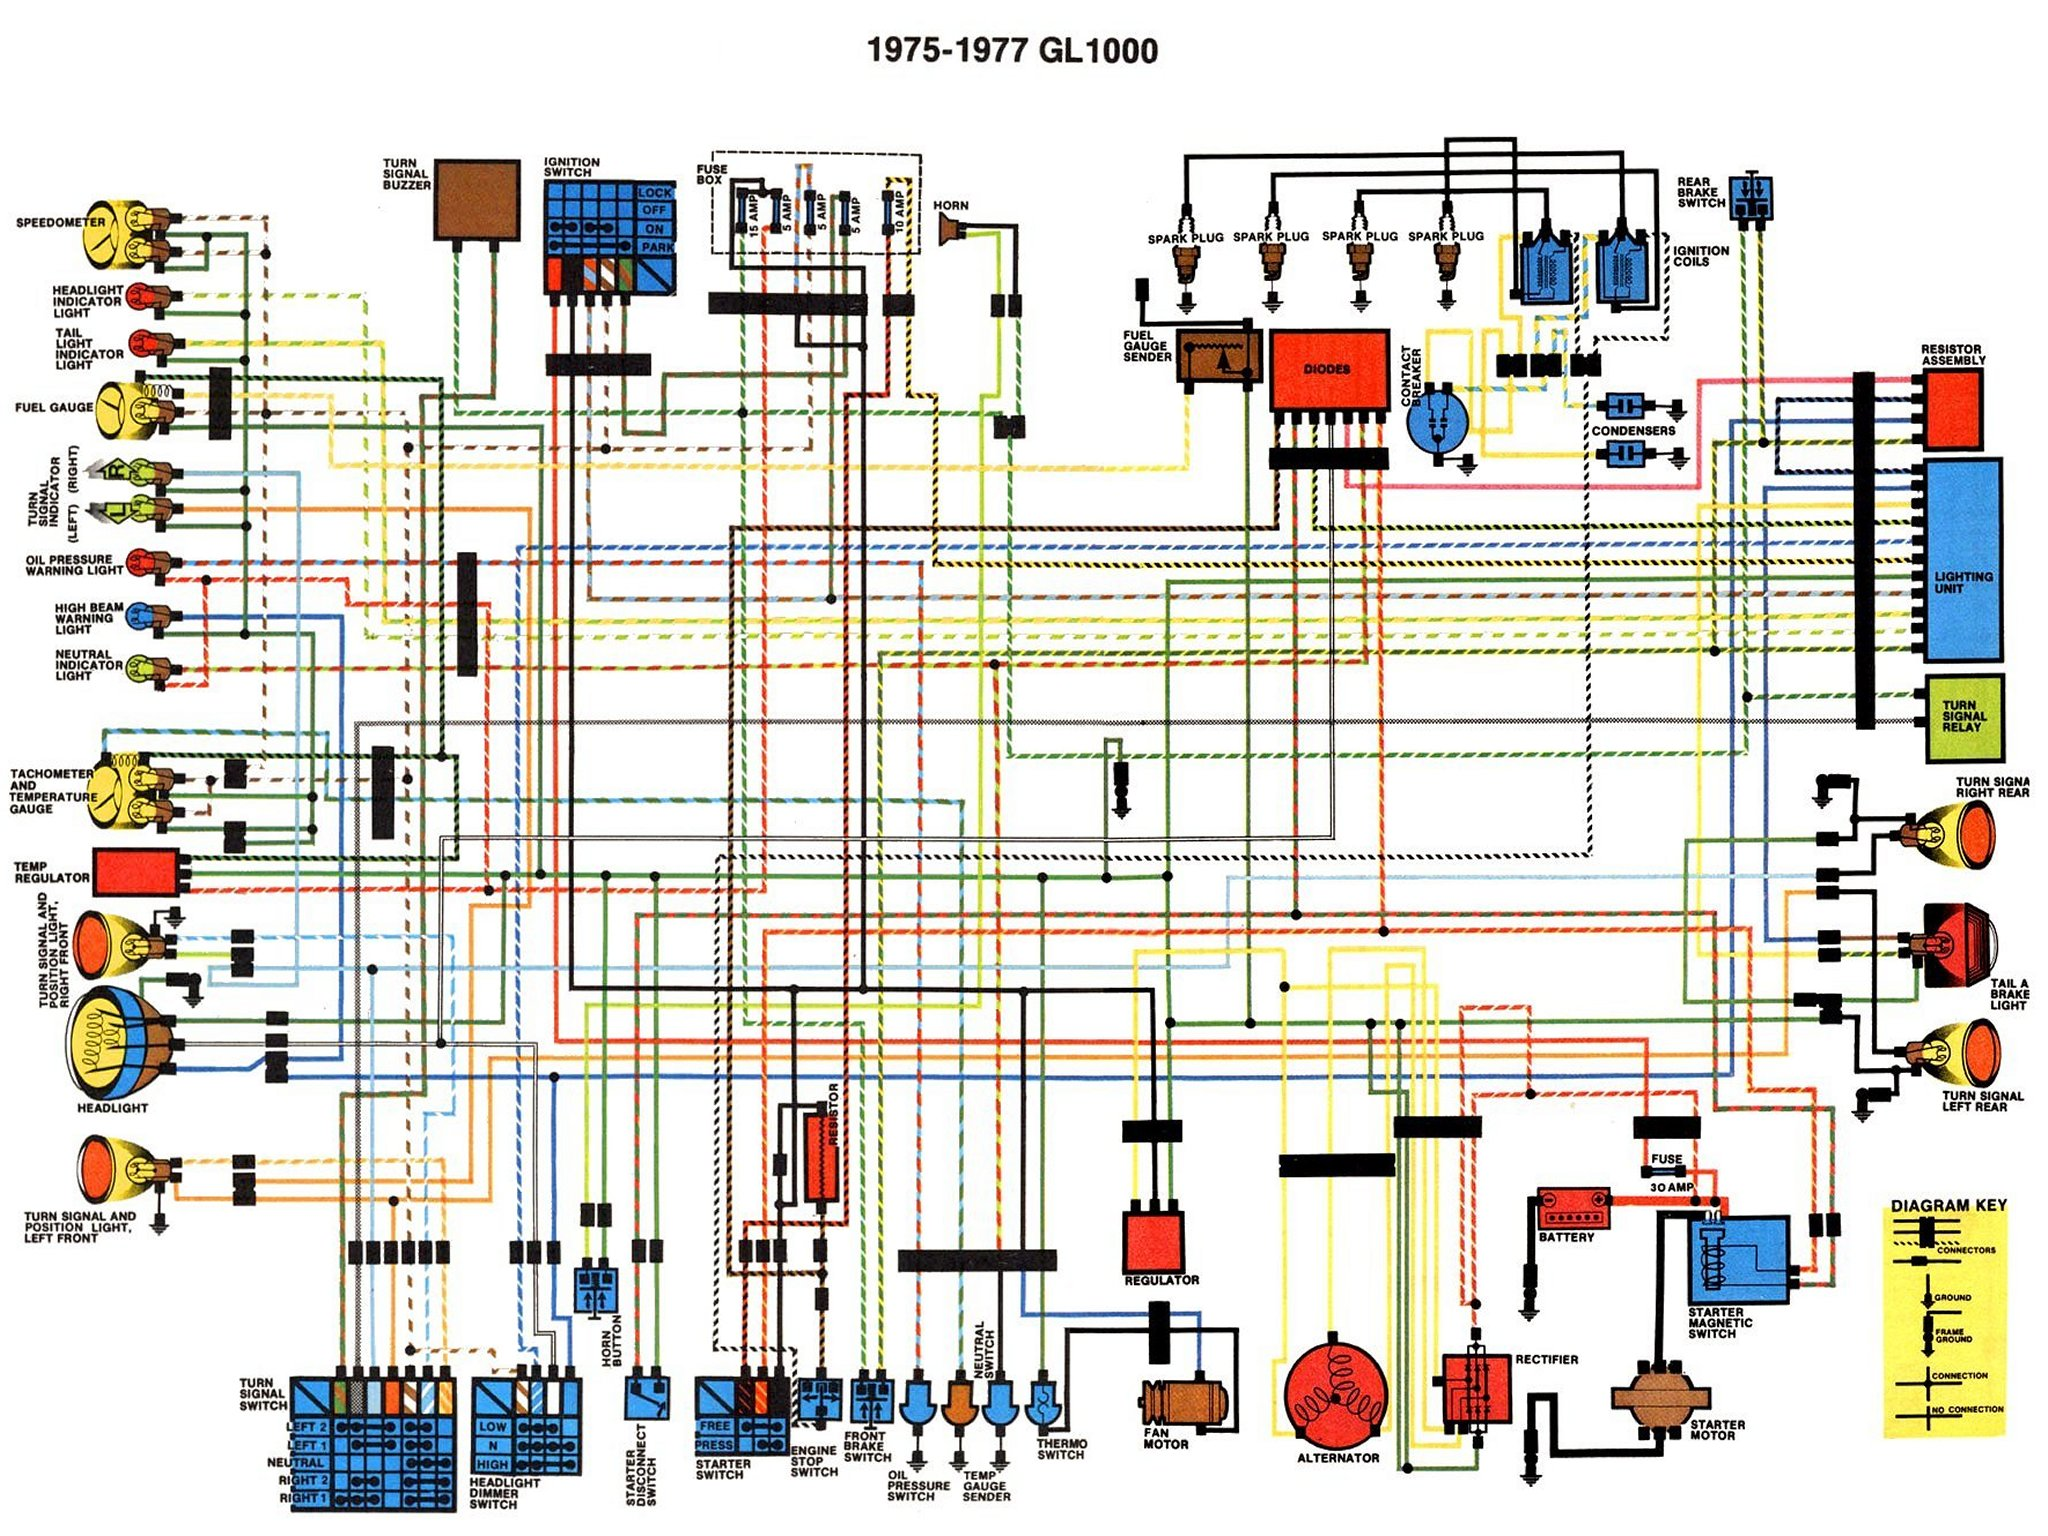 honda goldwing wiring harness wiring diagrams fjgl1100 wiring harness diagram wiring diagram schematics 1981 honda goldwing gl1100 wiring harness honda goldwing wiring harness